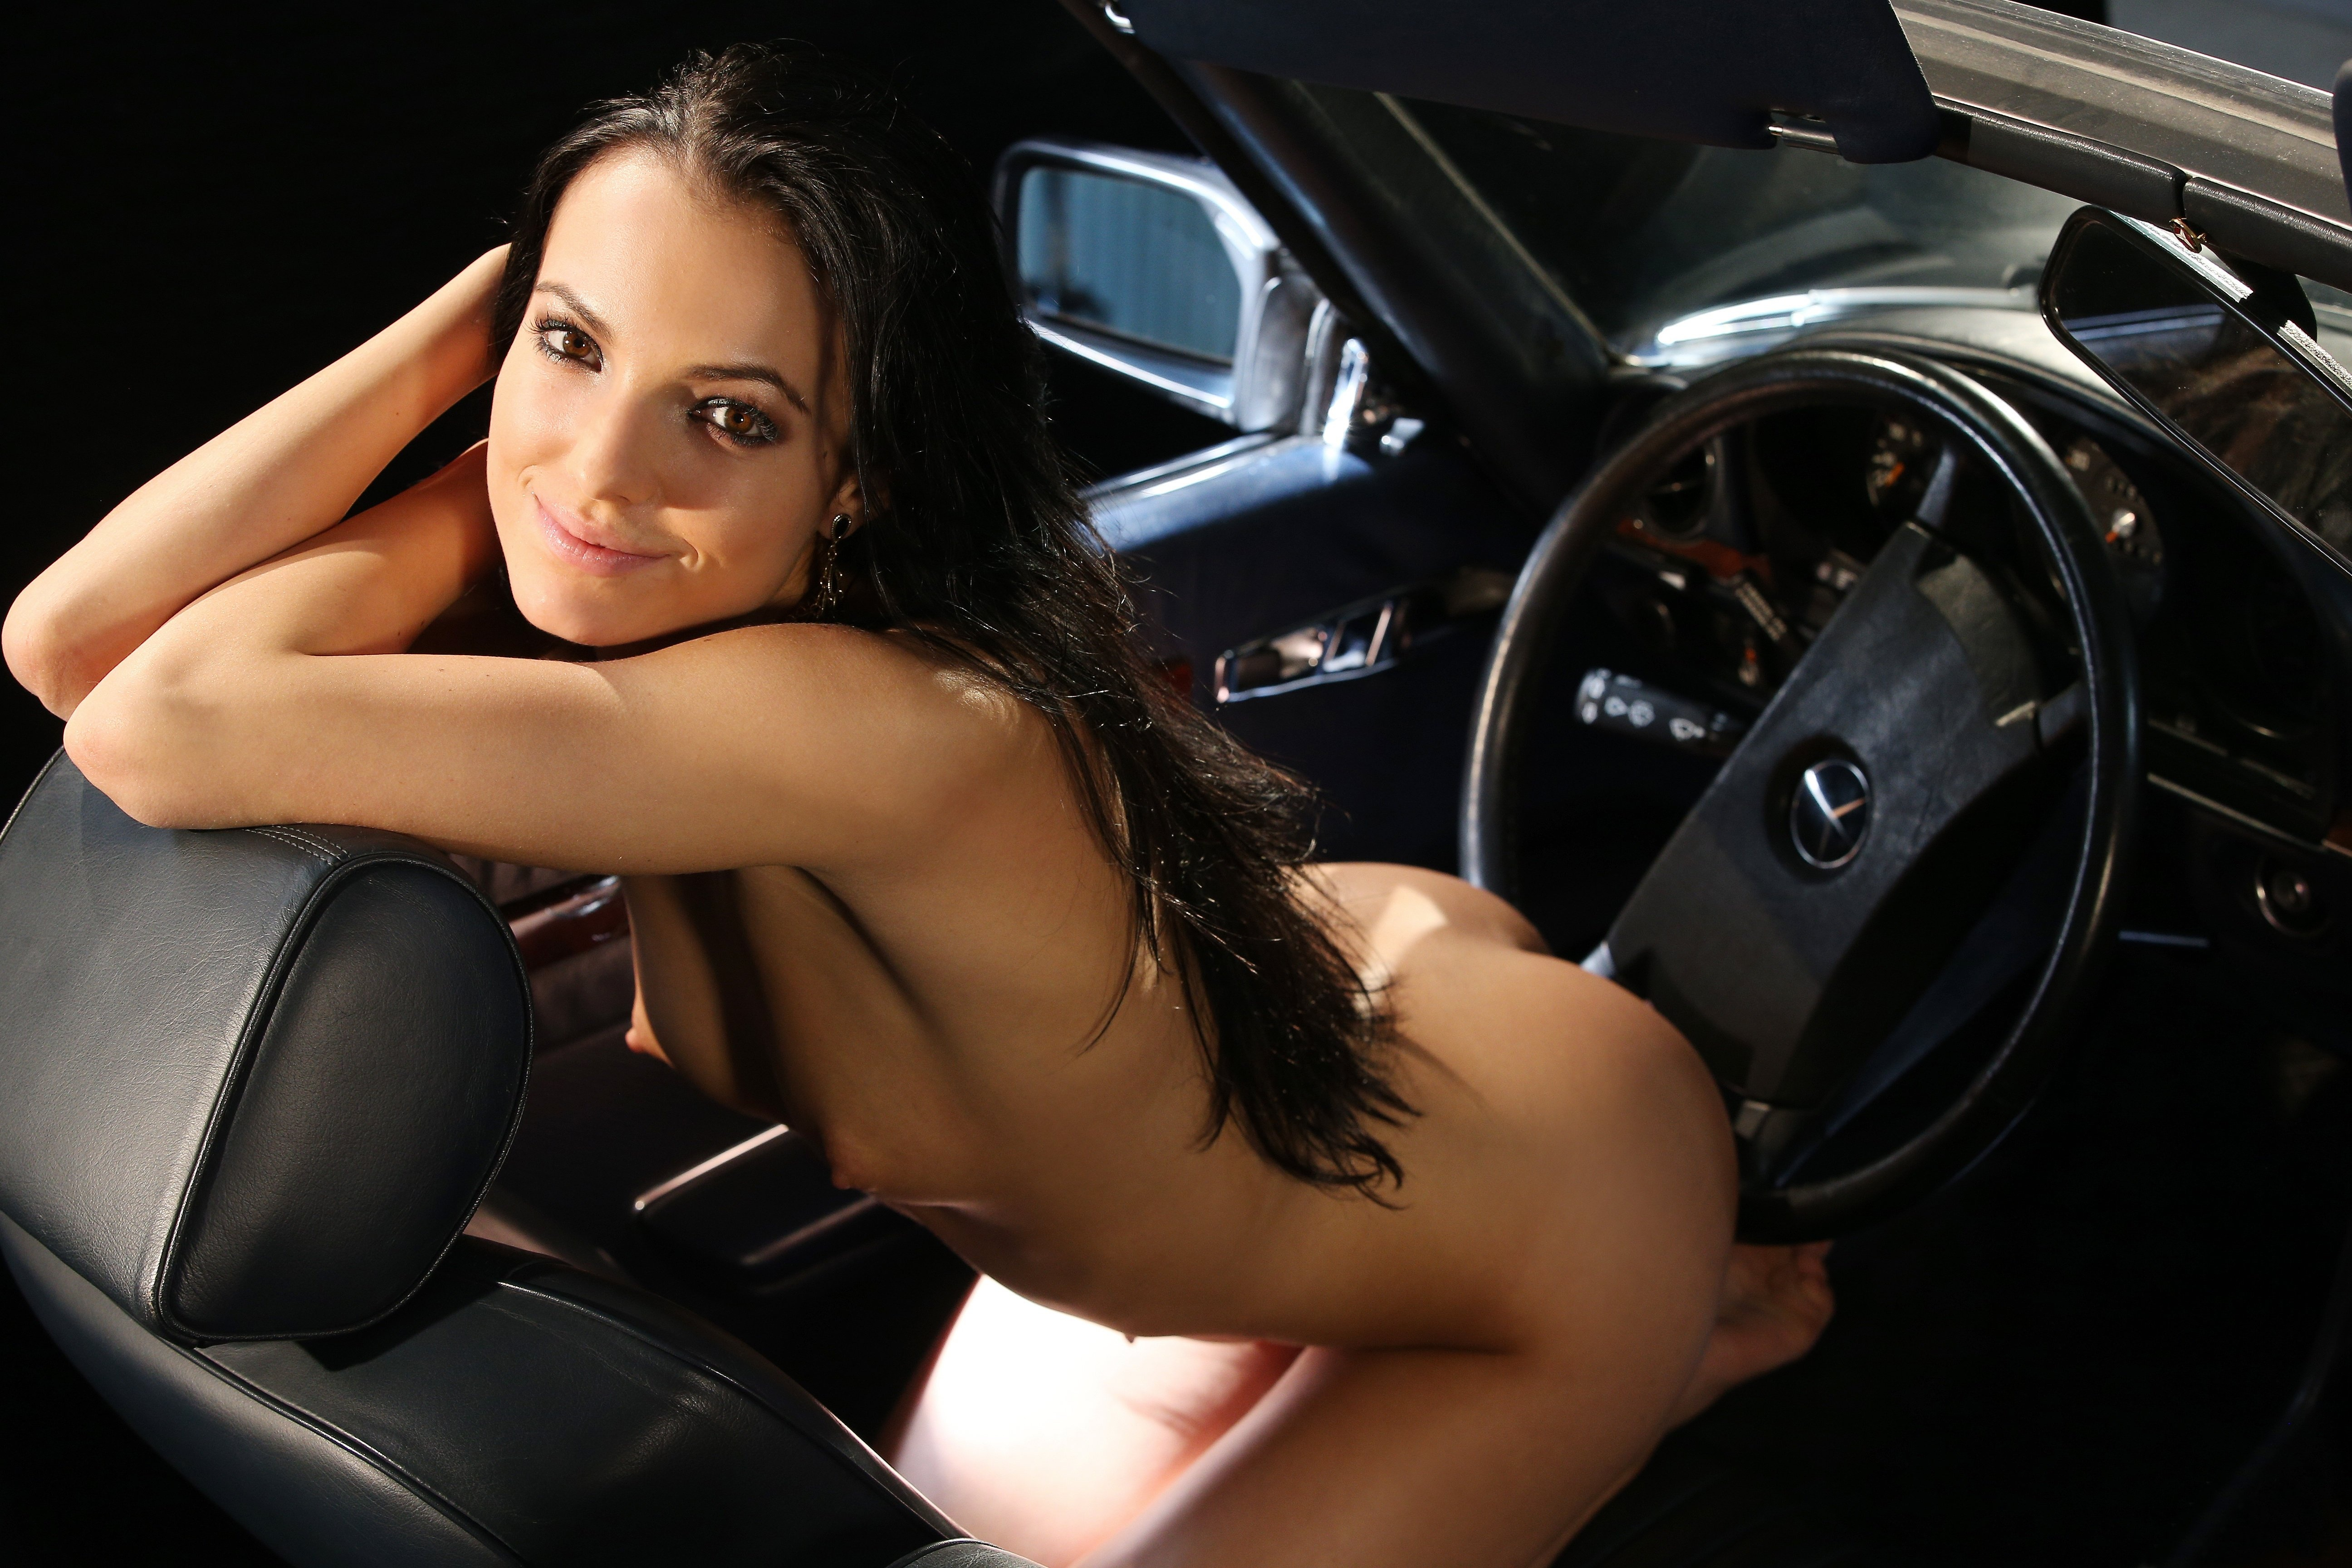 chicks-flashing-naked-girl-fixing-a-car-nudy